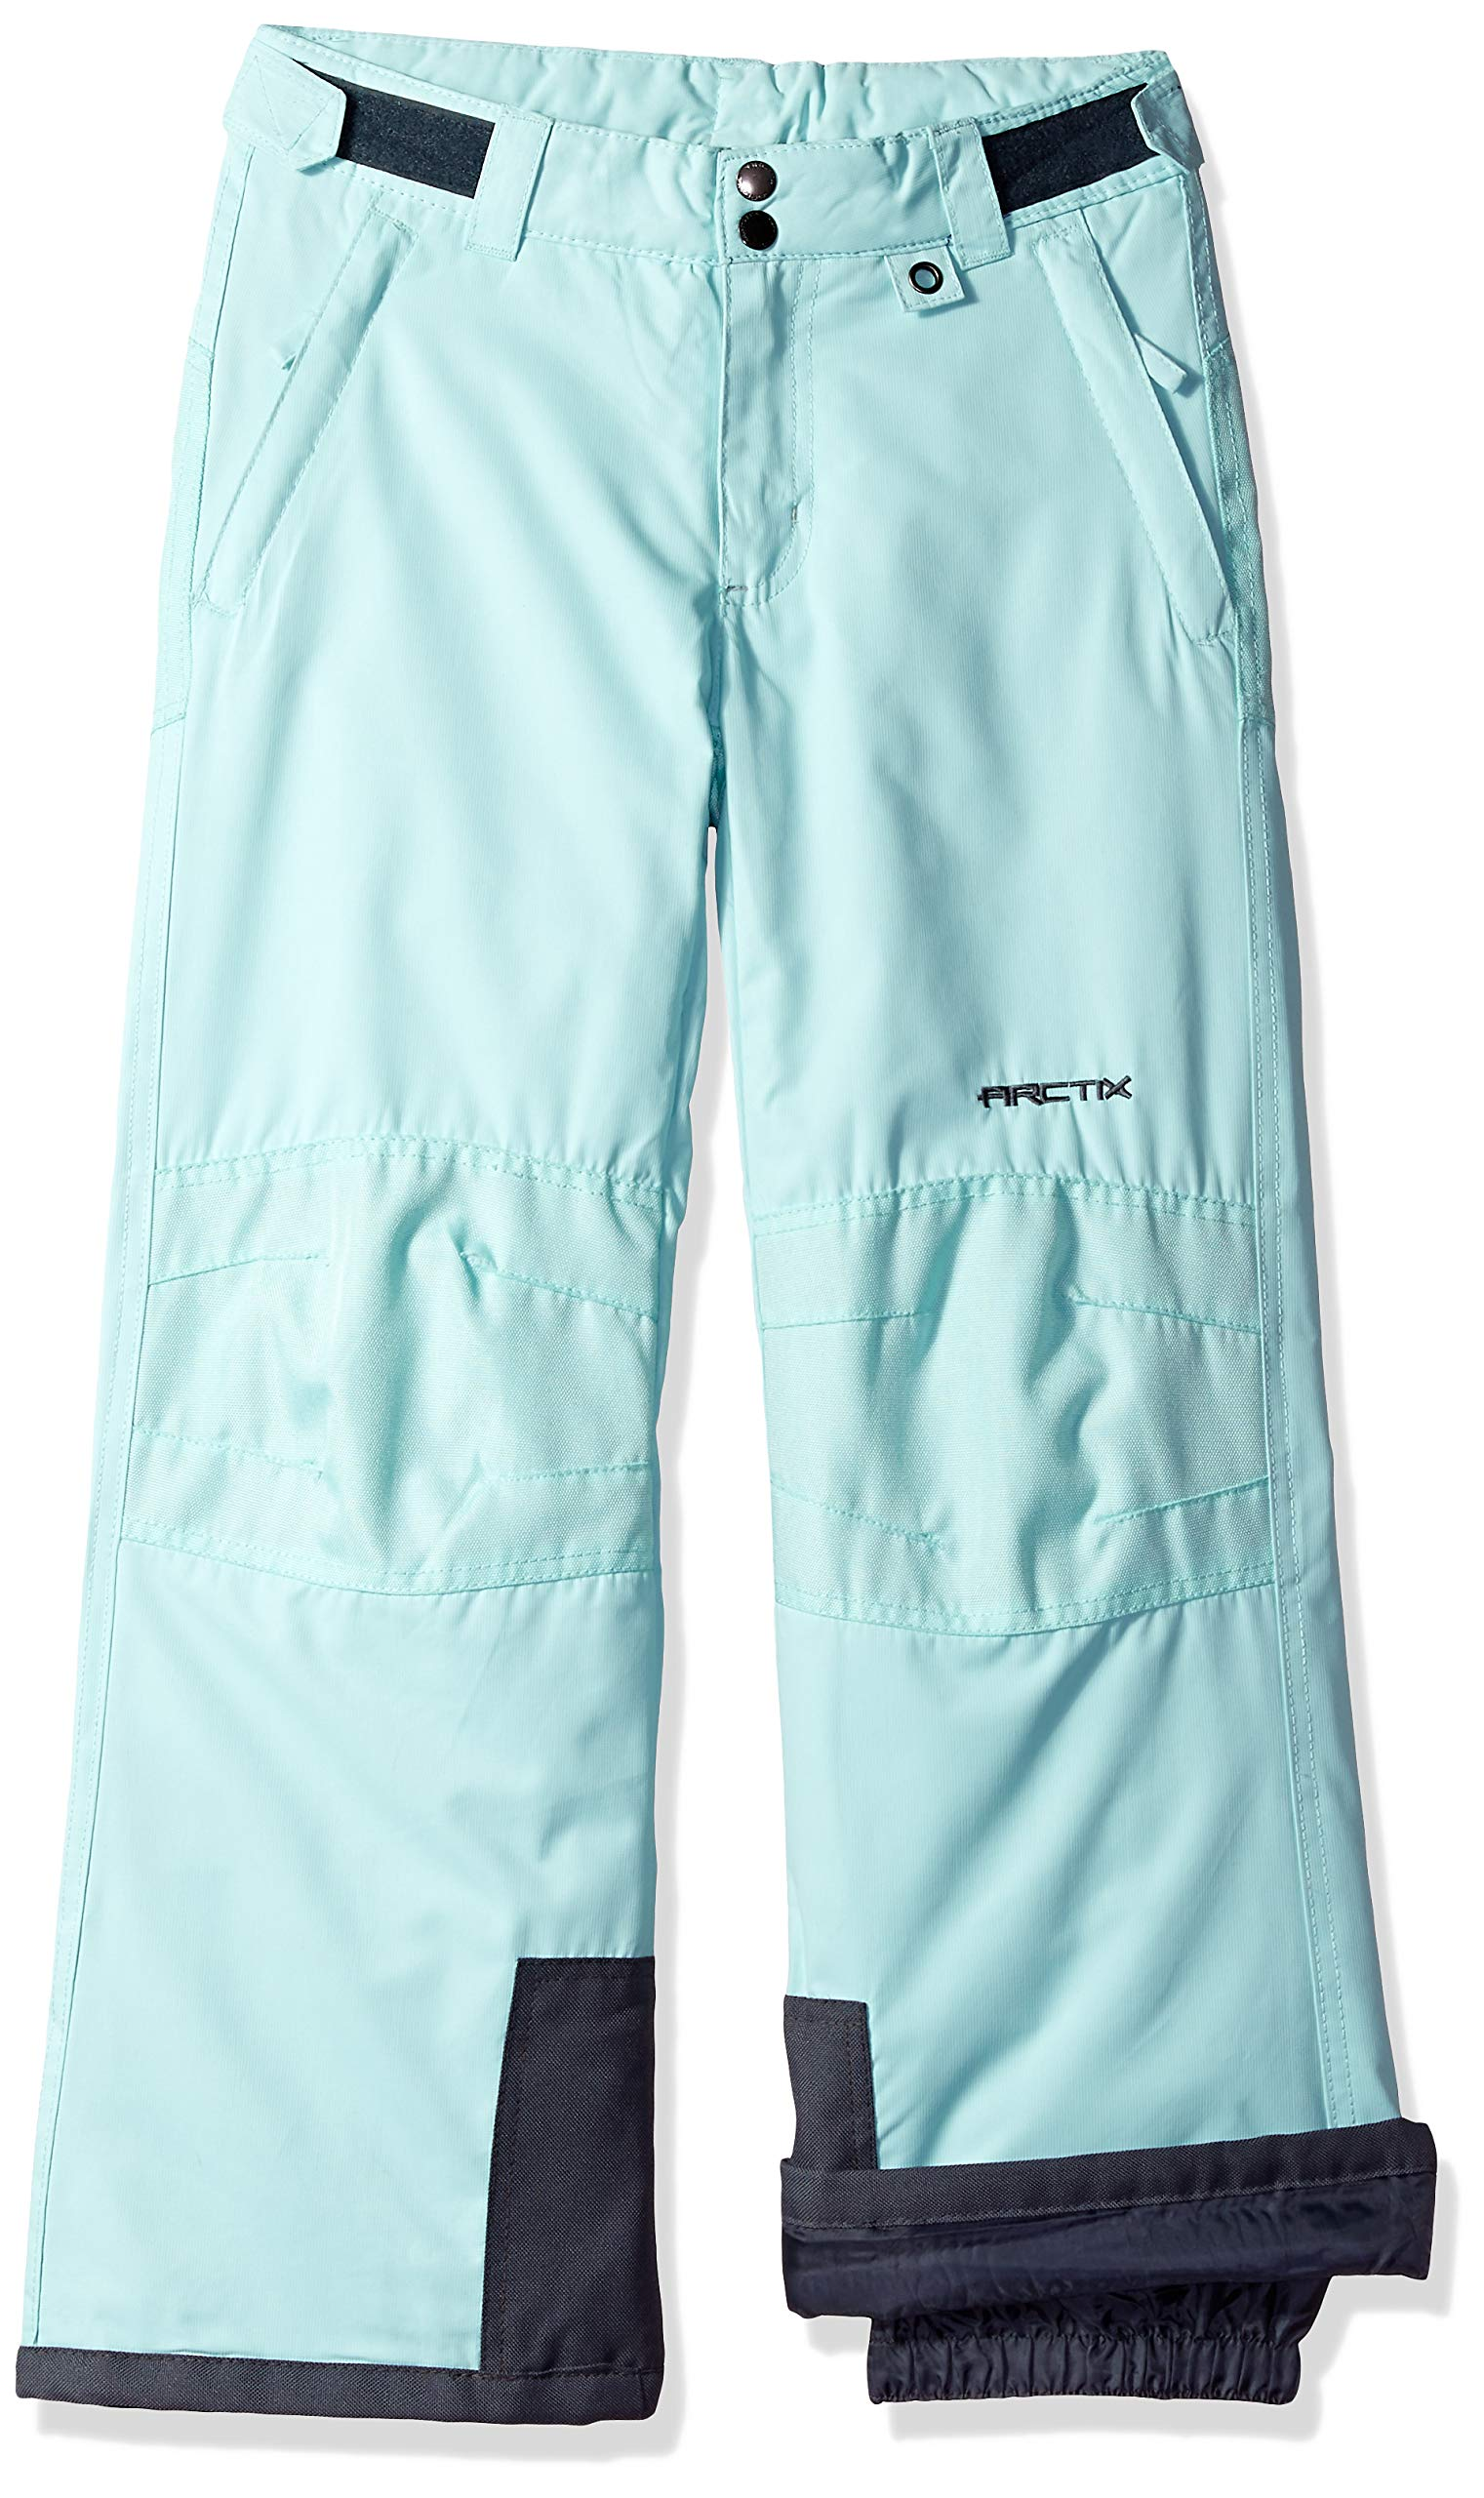 Arctix Youth Snow Pants with Reinforced Knees and Seat, Island Azure, Large by Arctix